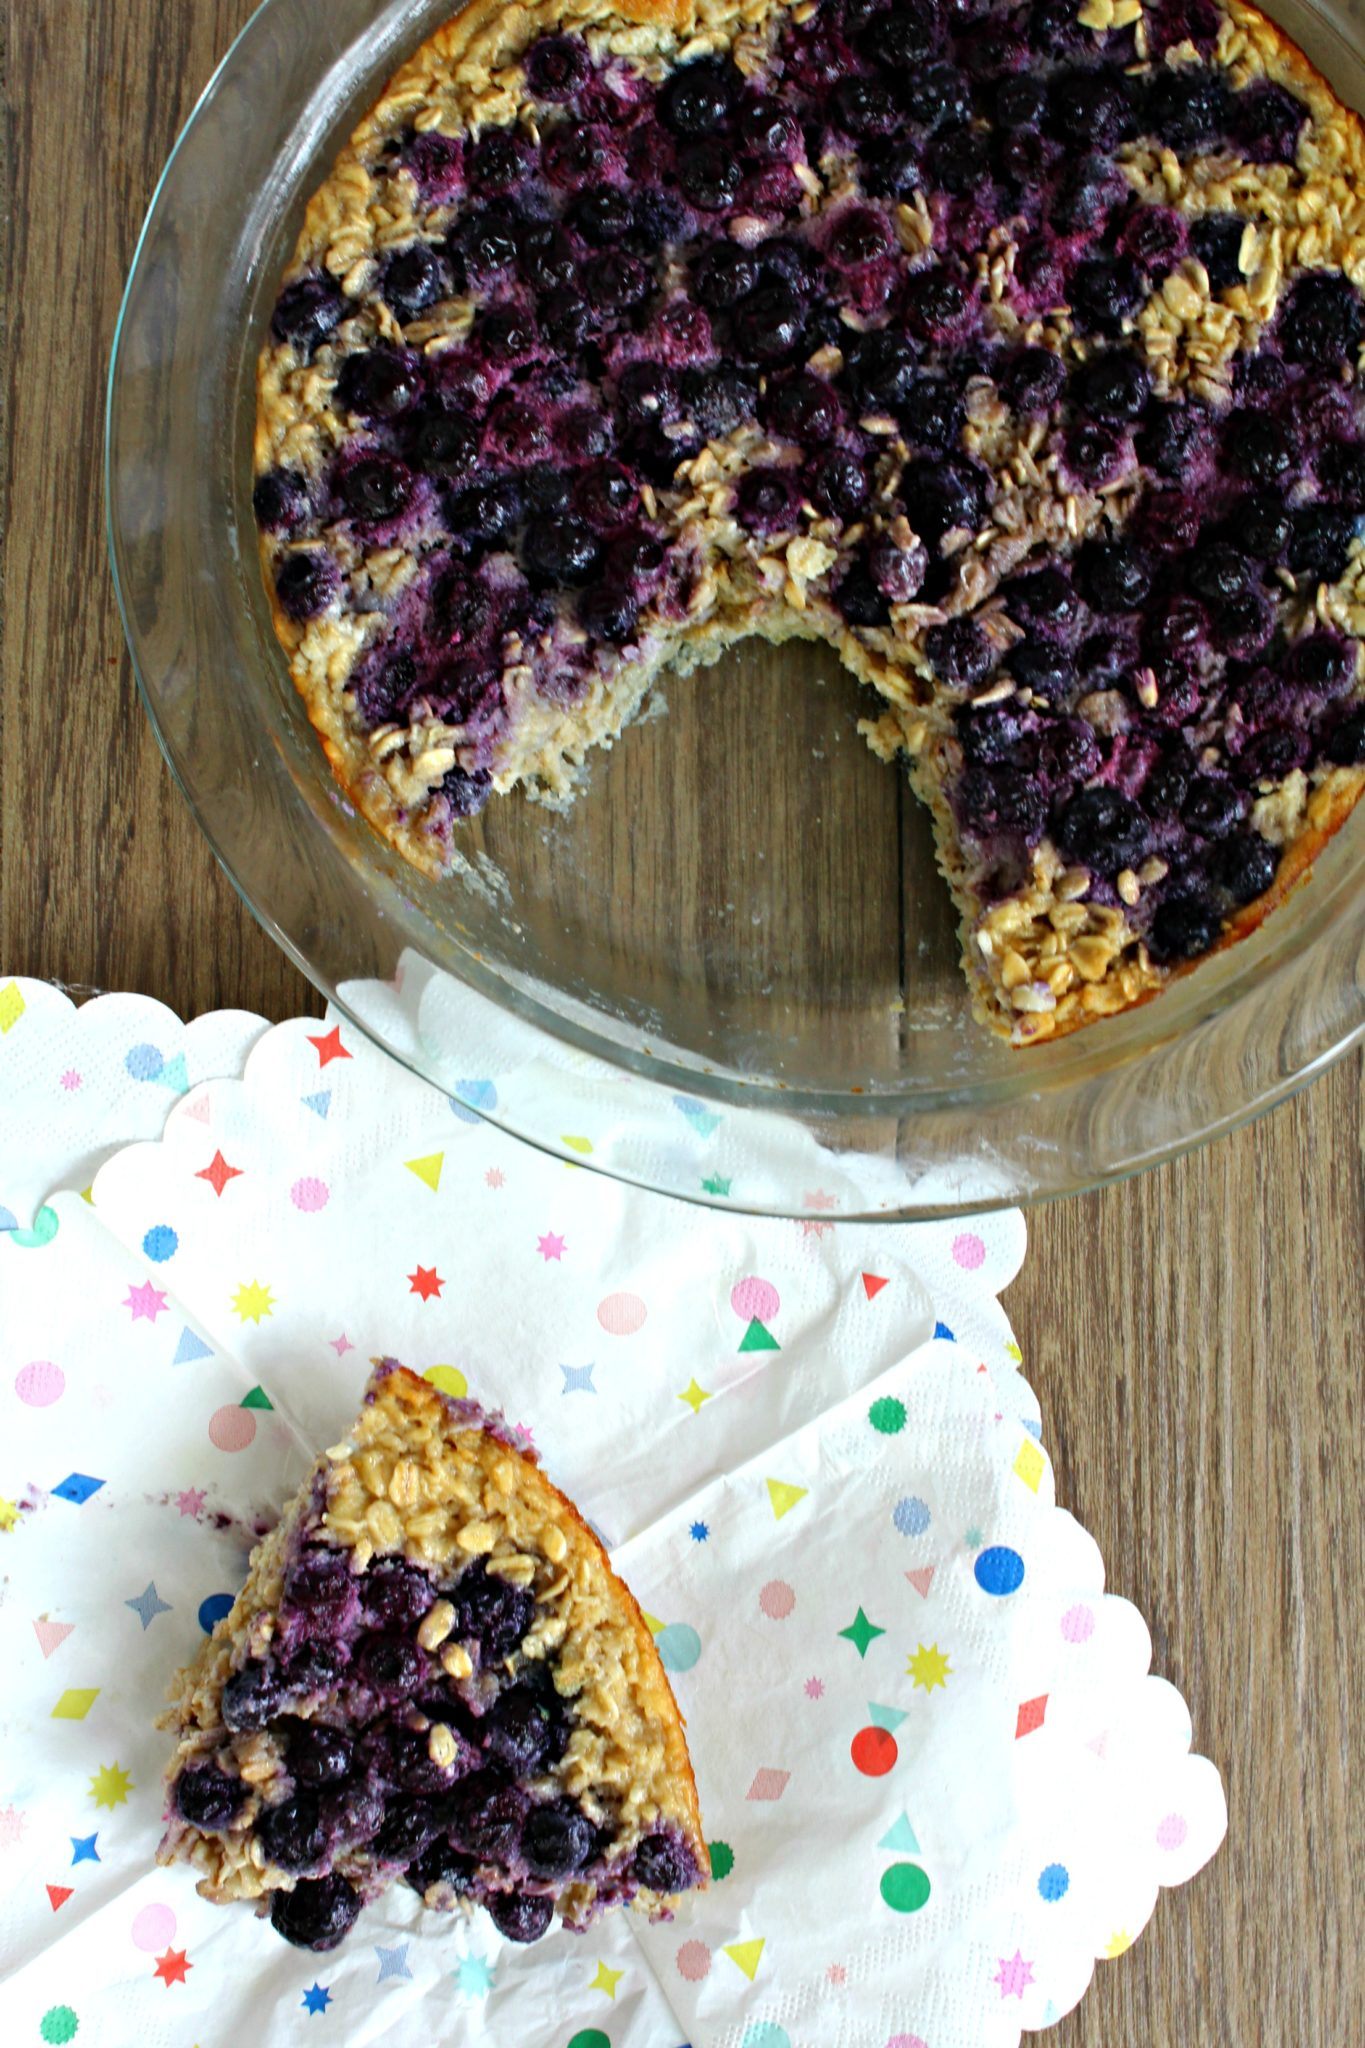 blueberry-breakfast-cake-1